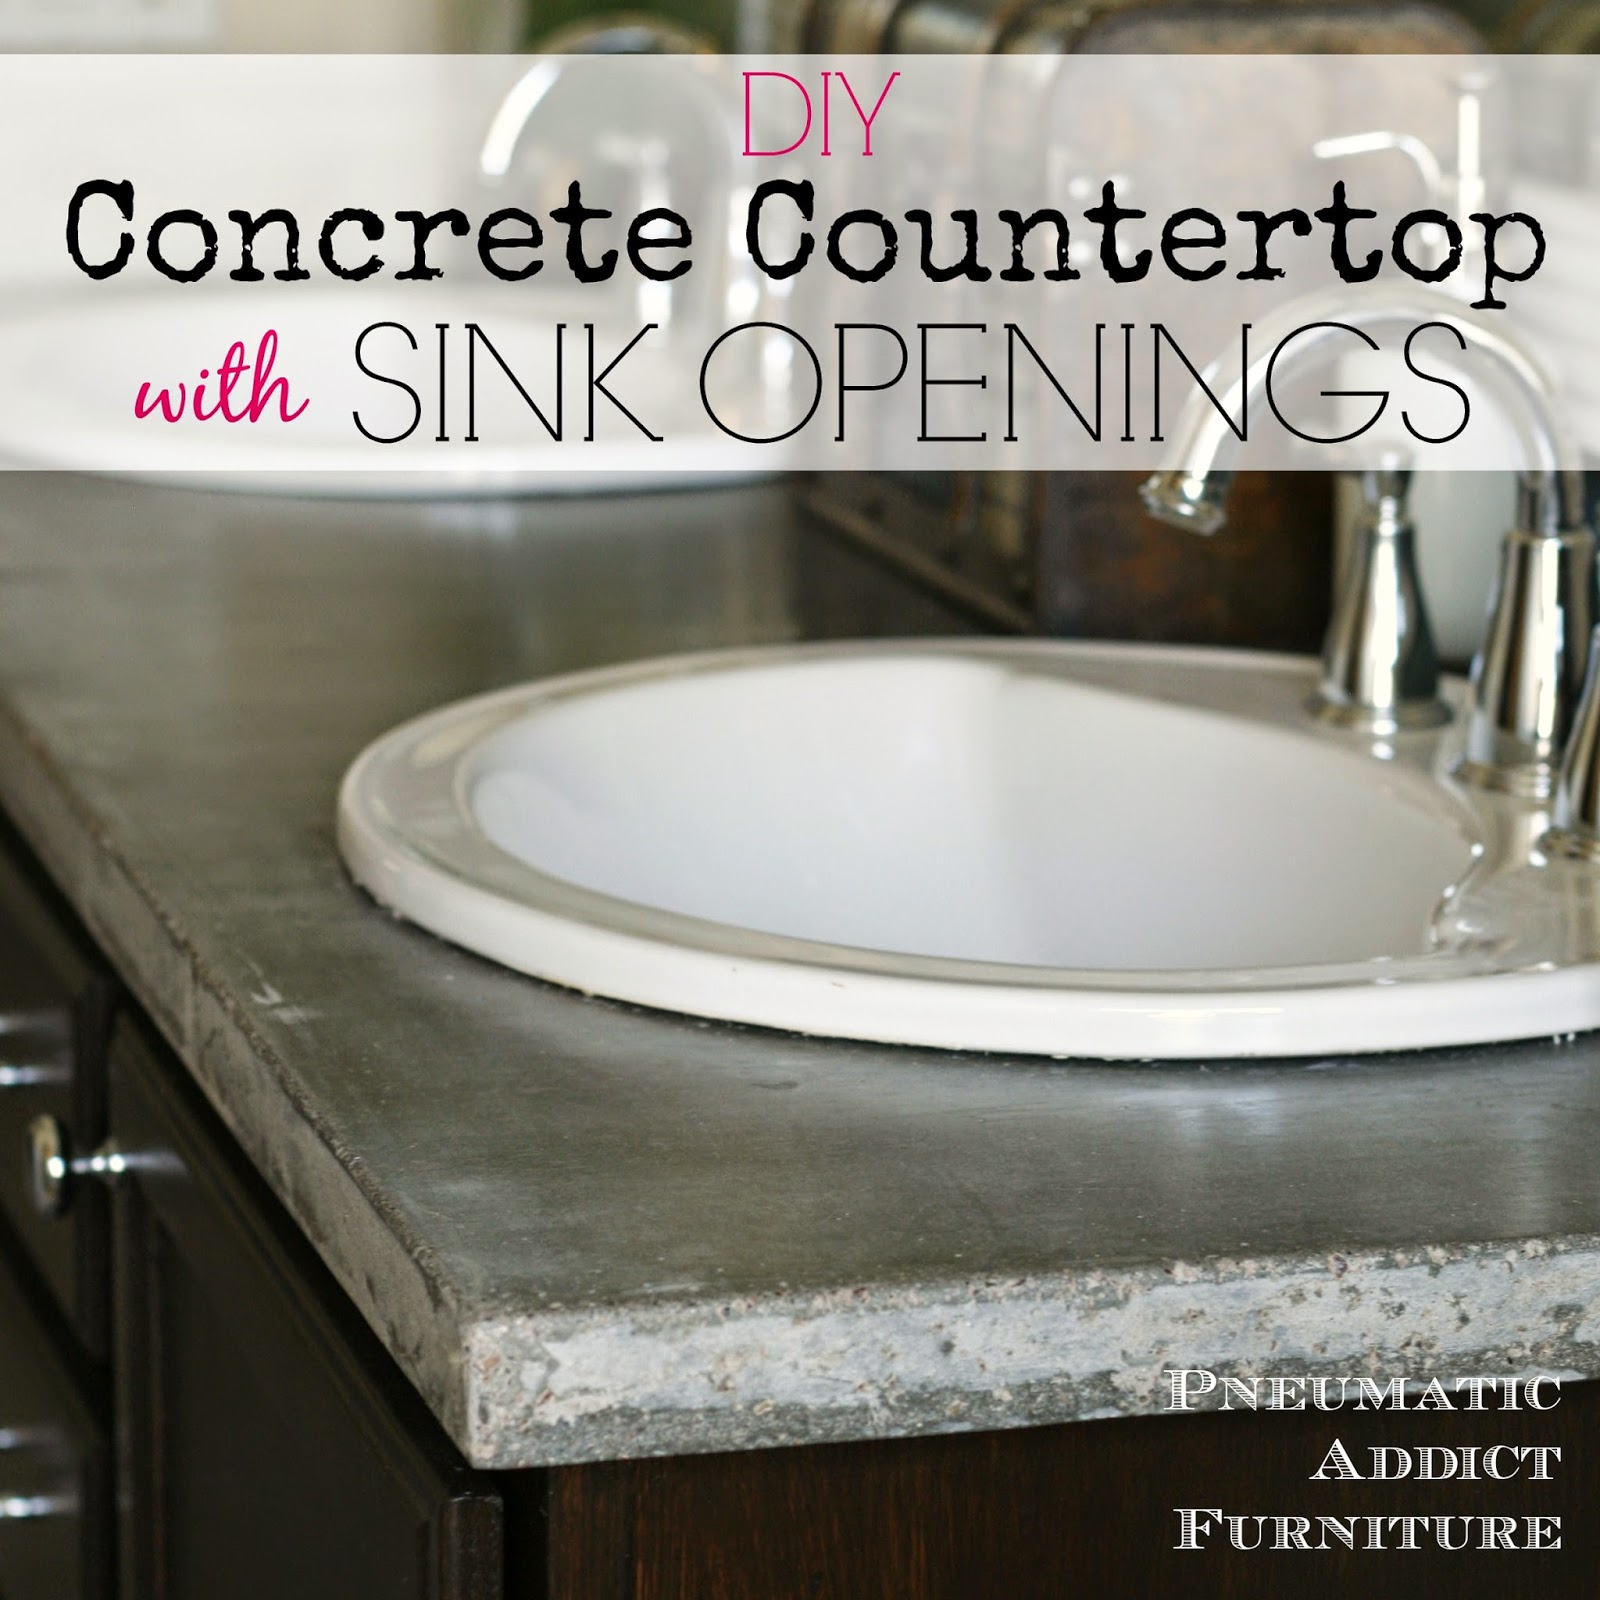 Miraculous Diy Concrete Countertop With Sink Openings Pneumatic Addict Download Free Architecture Designs Xerocsunscenecom